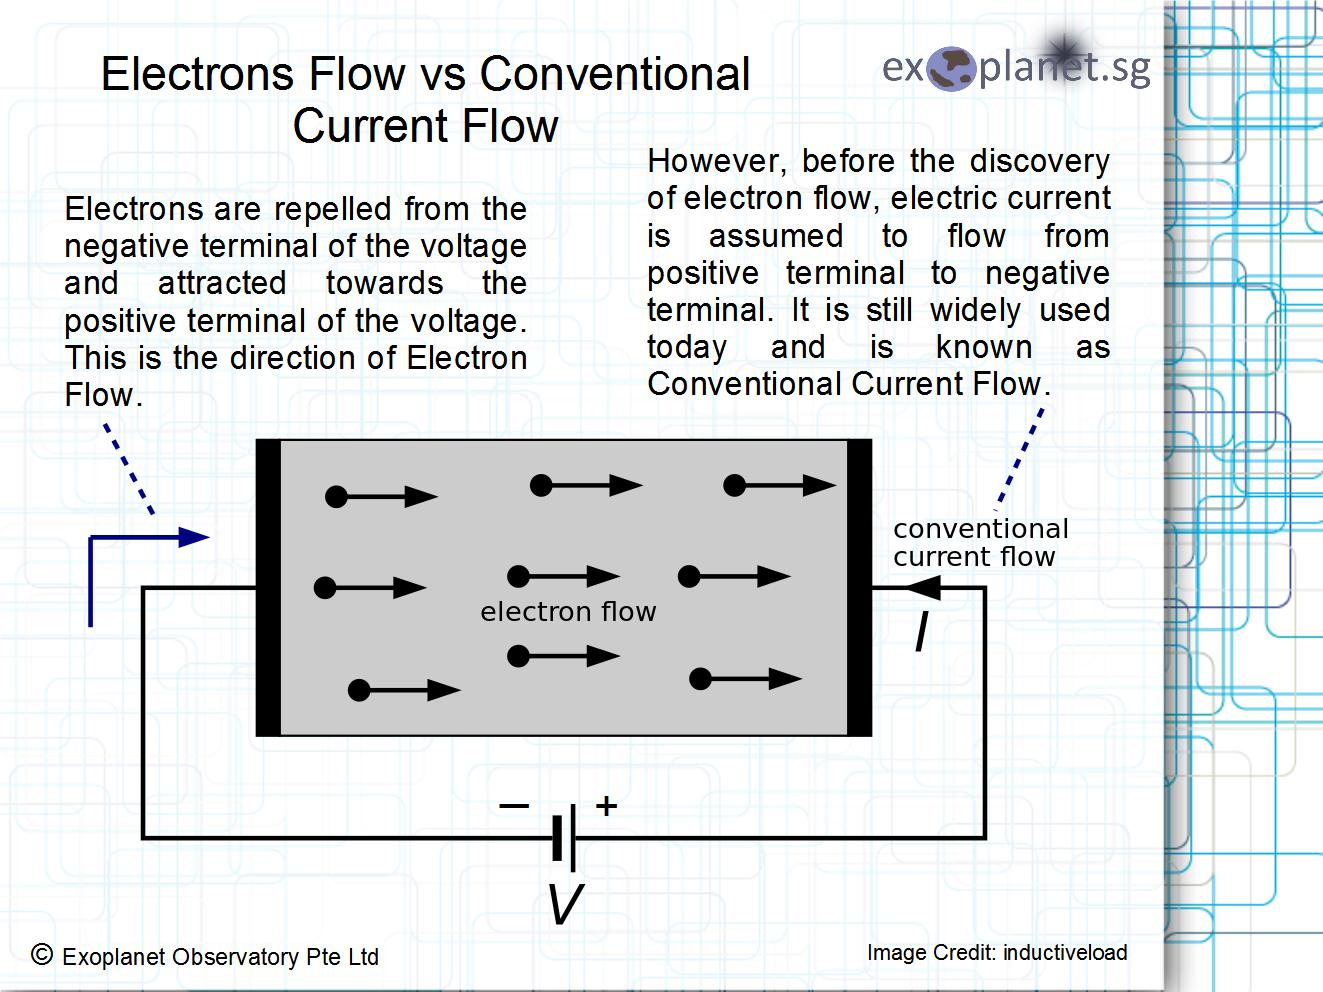 electric current and current flow Current is the flow of electrons in a circuit or electrical systemyou can also think of current as the quantity, or volume, of water flowing through a water pipe electrical current is measured in amperage,.